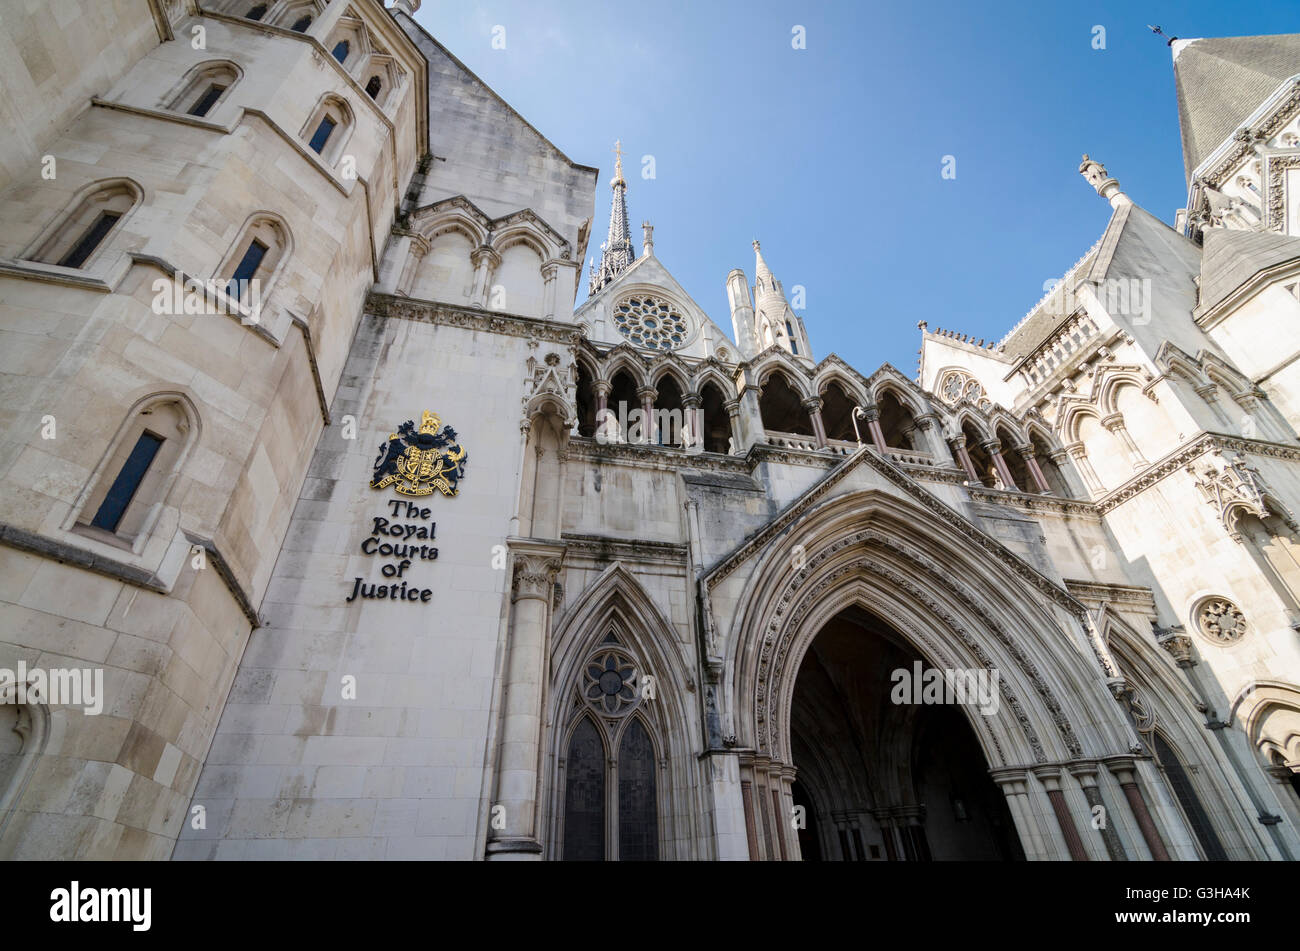 The Royal Courts of Justice, London, UK - Stock Image